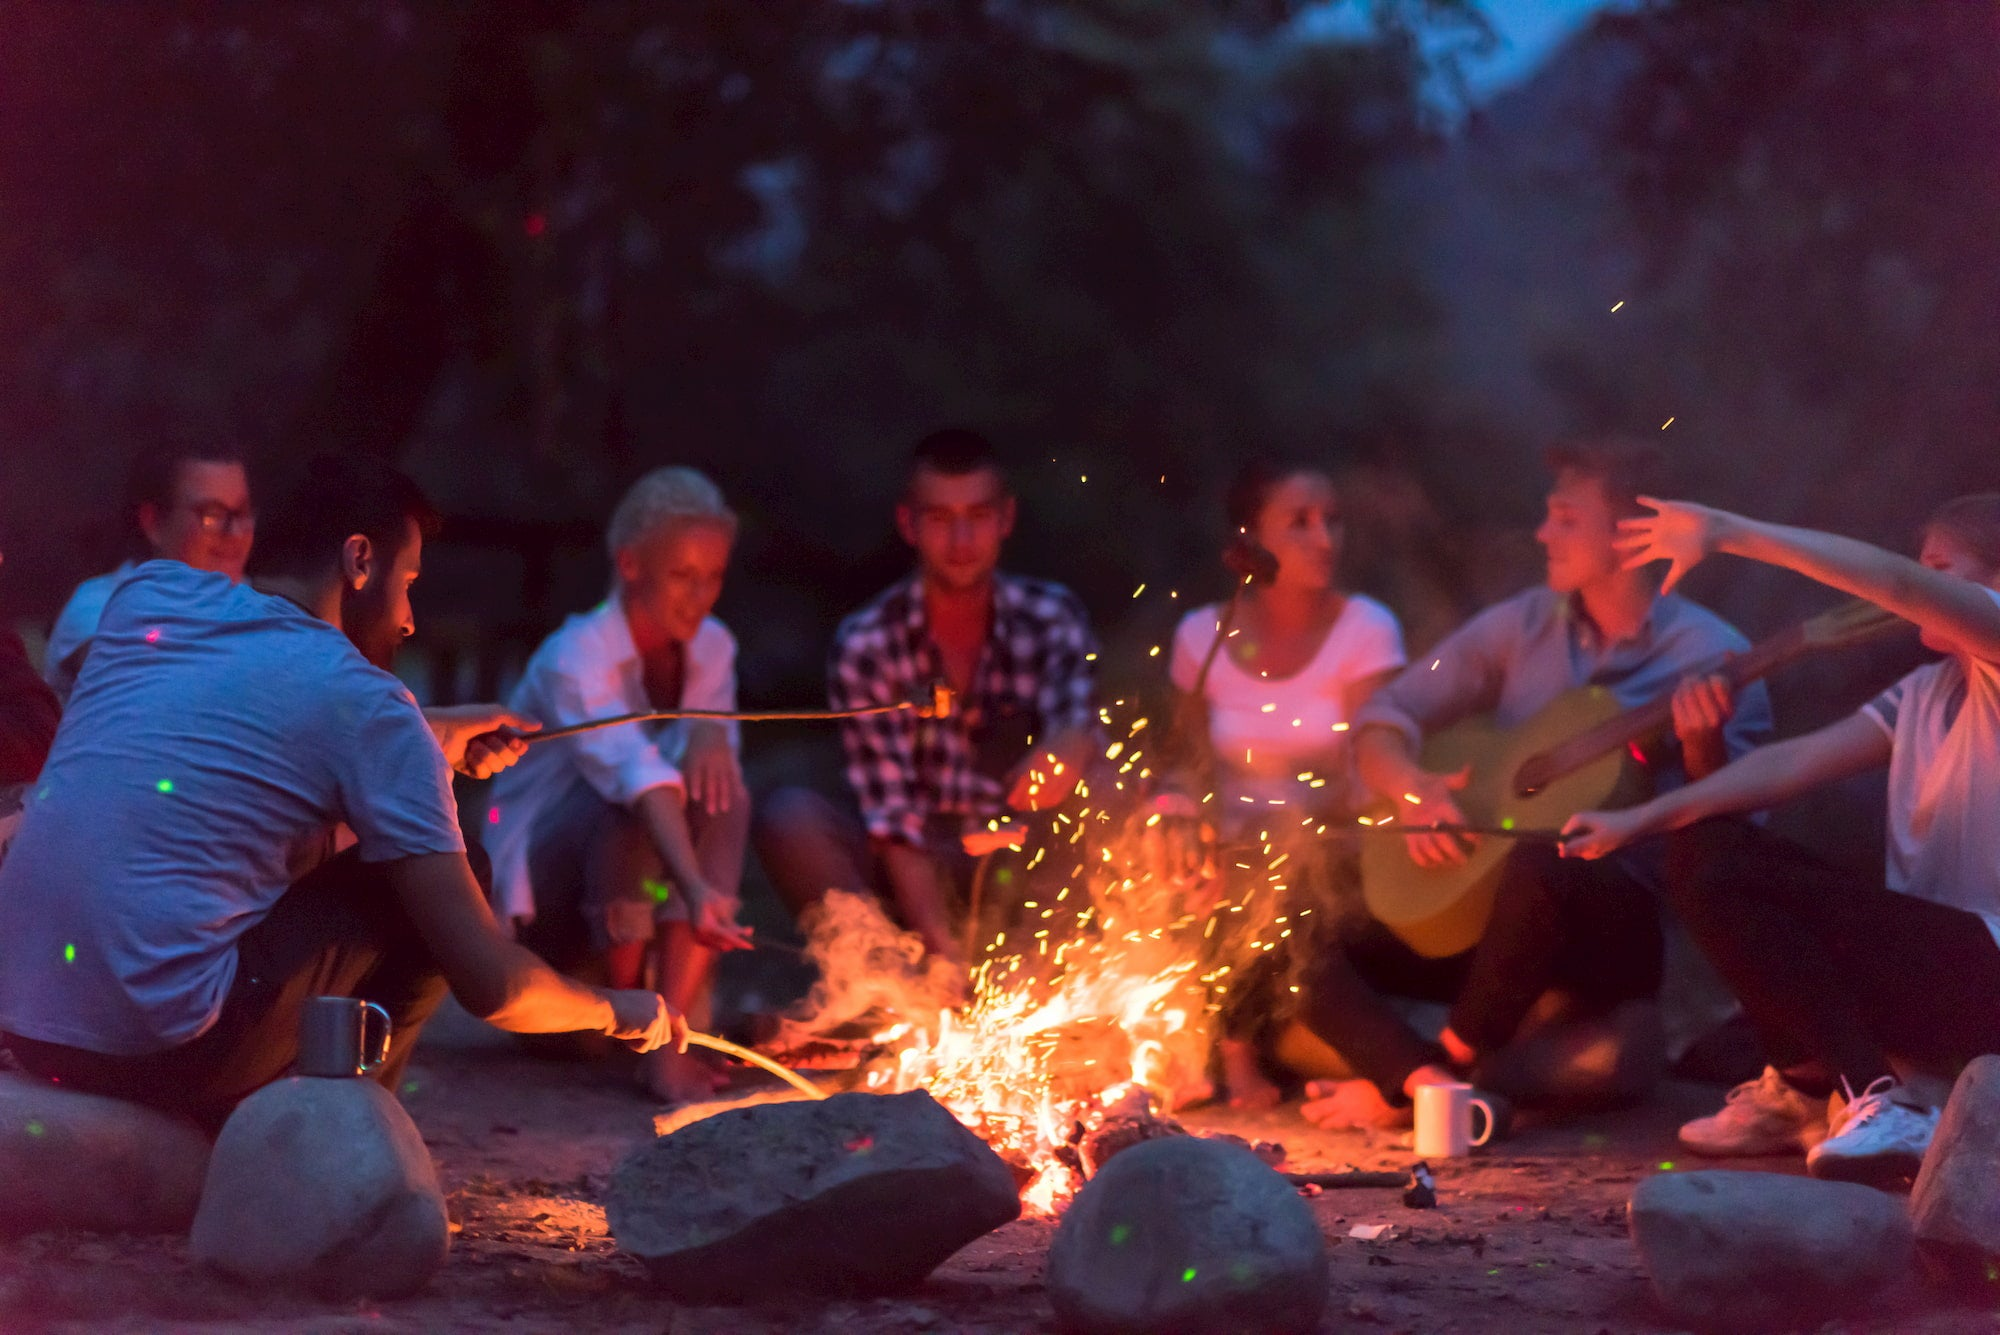 Group of campers gathered around a fire.